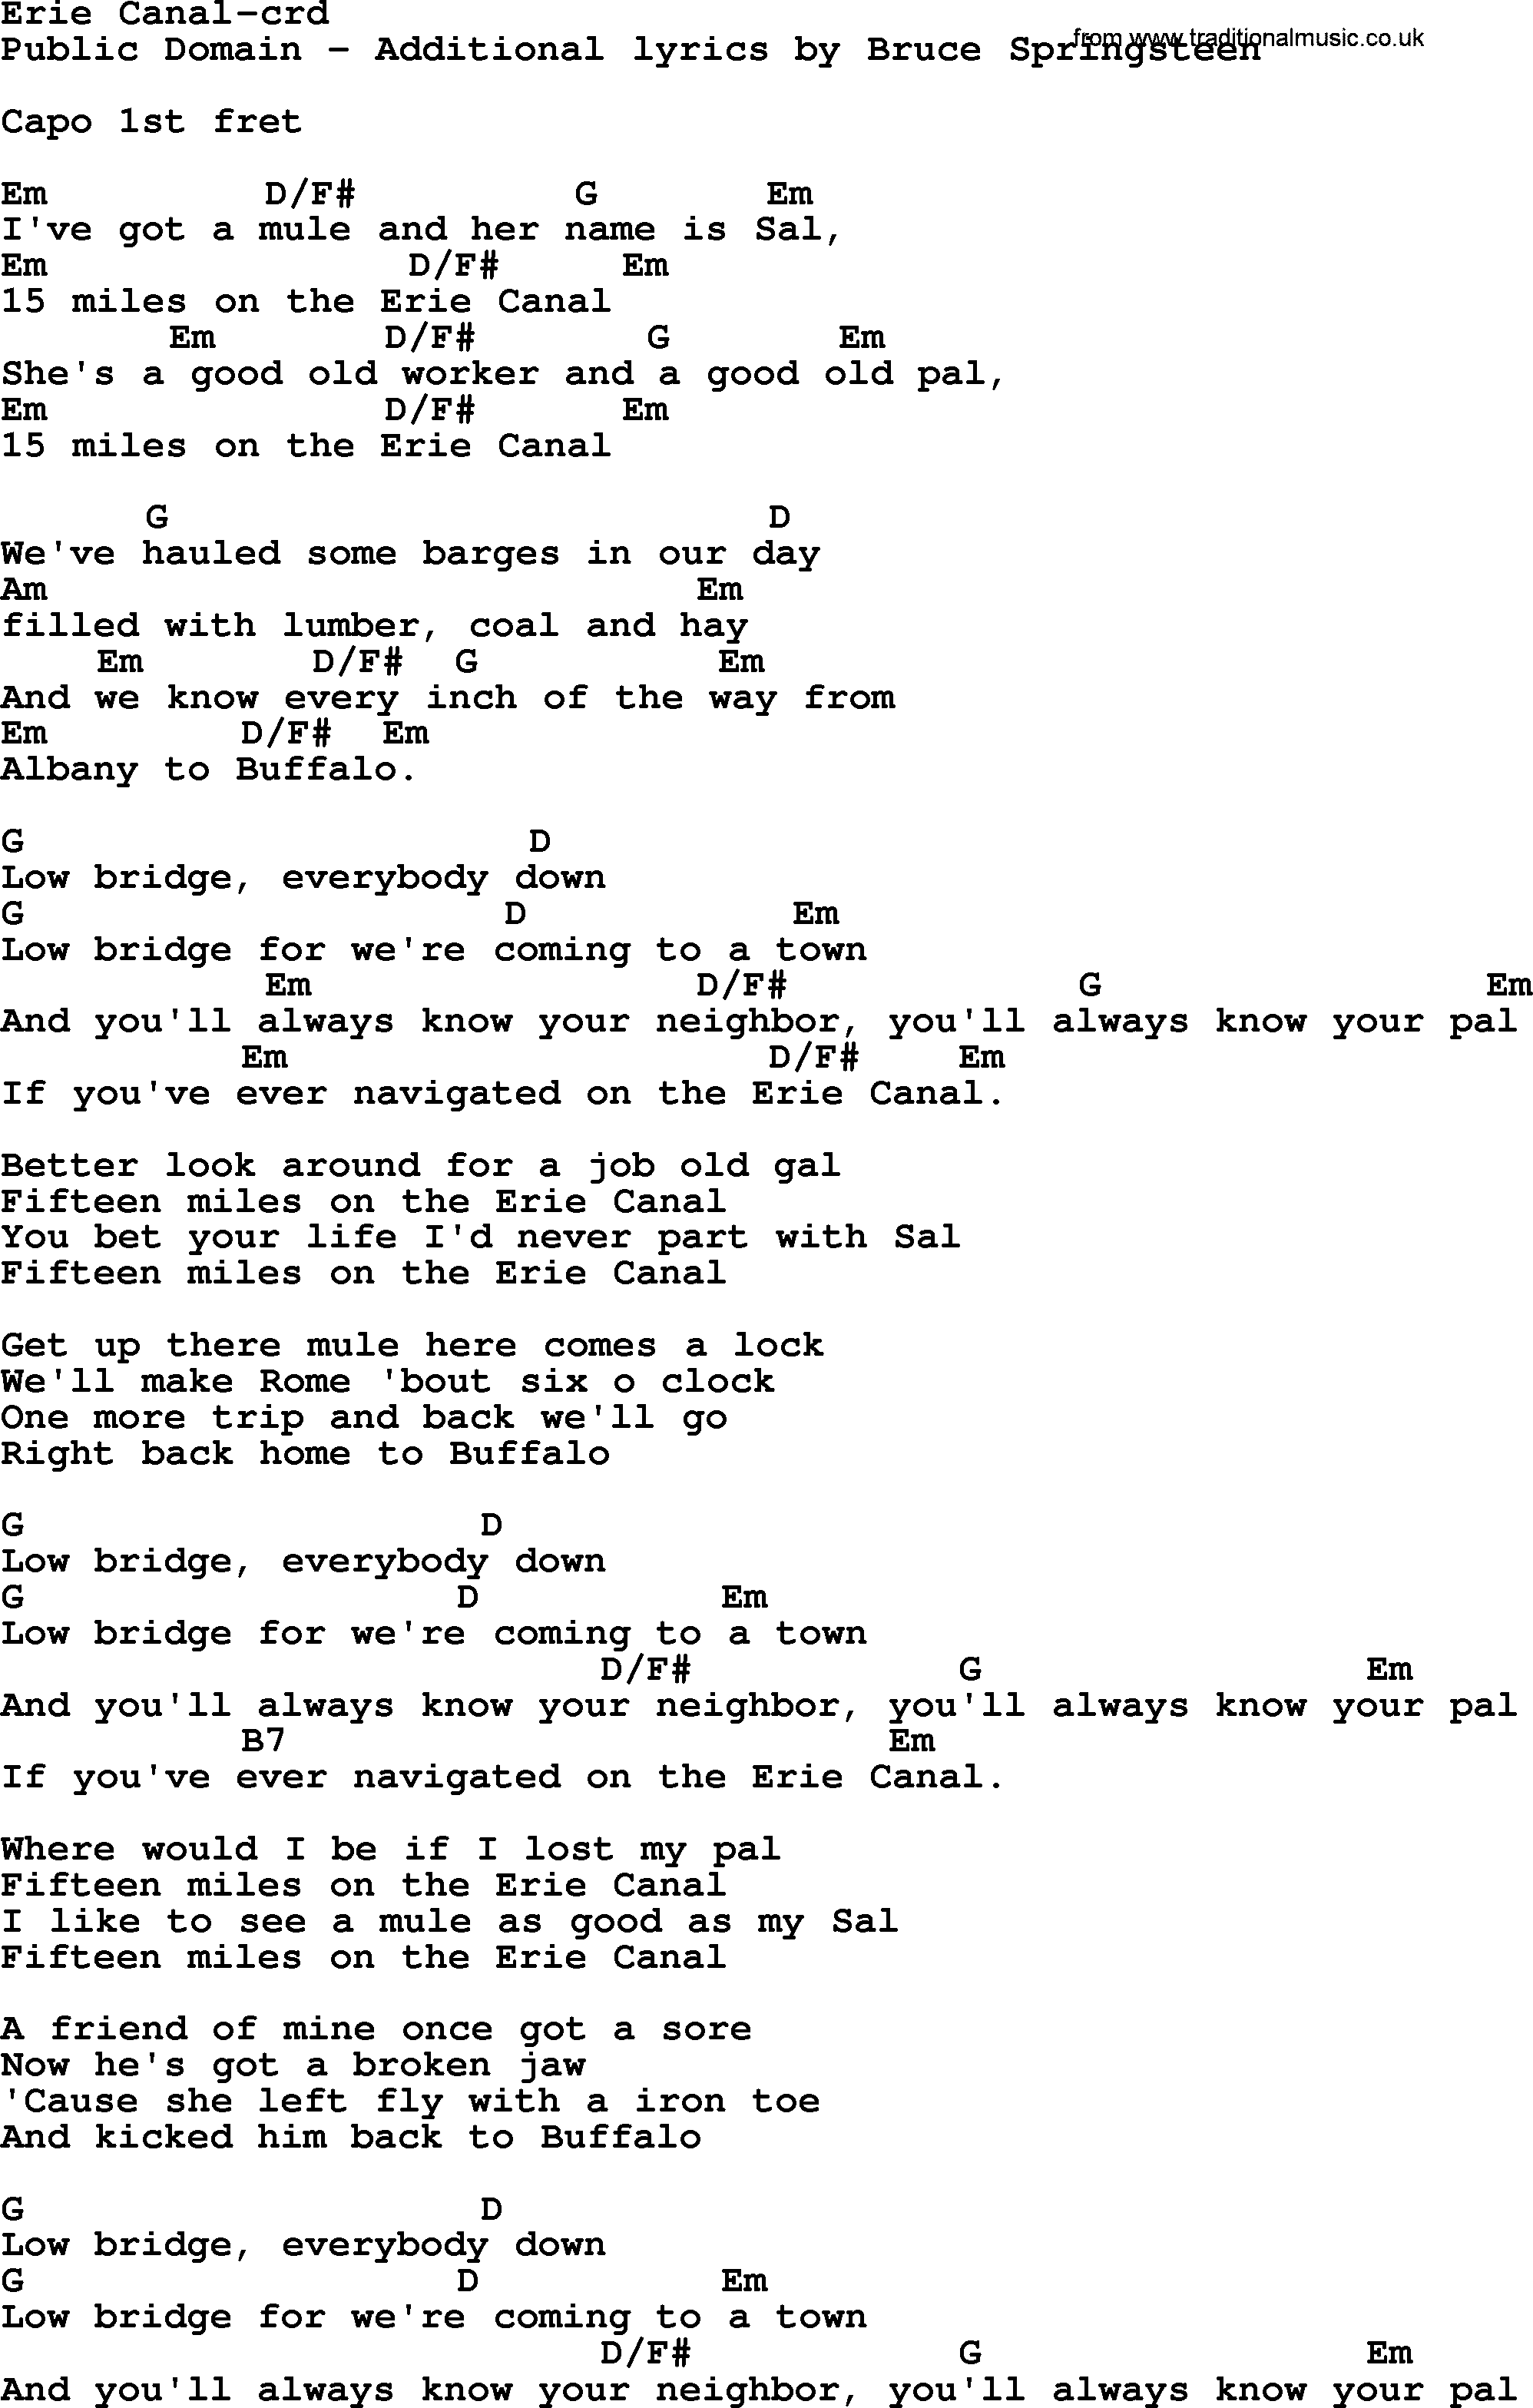 Bruce Springsteen - Erie Canal Lyrics | MetroLyrics